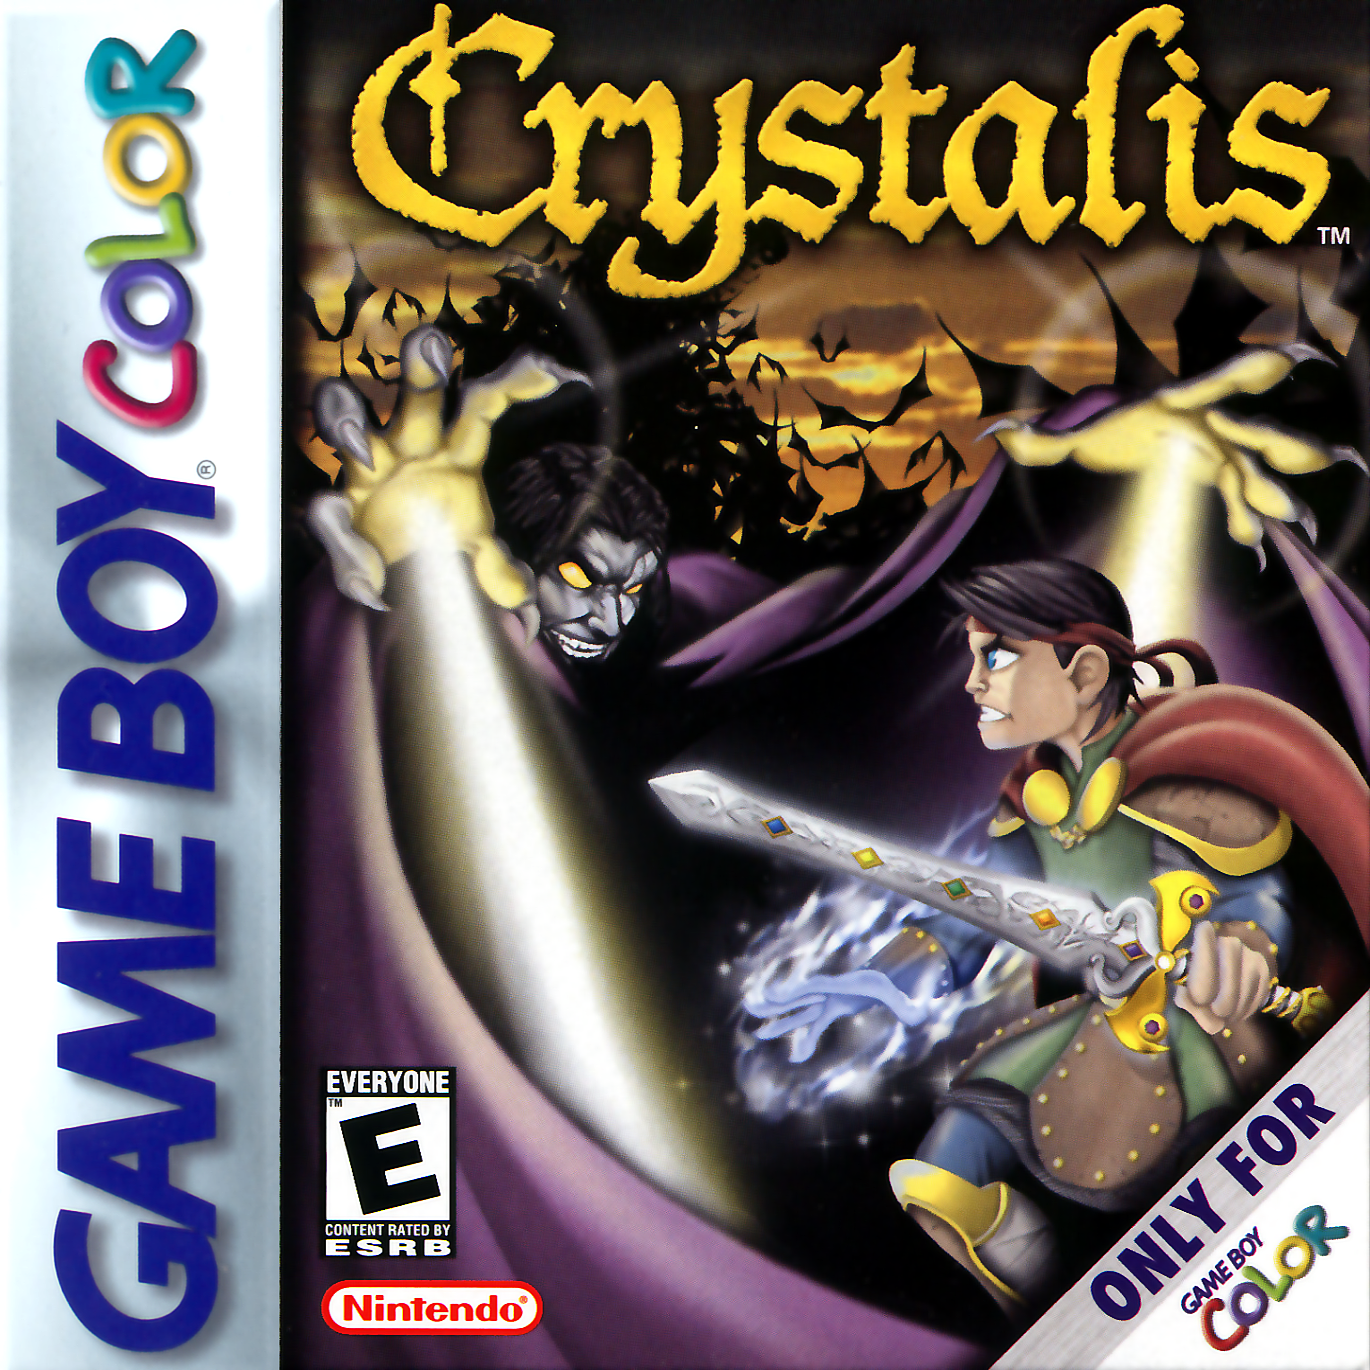 Crystalis Nintendo Game Boy Color cover artwork